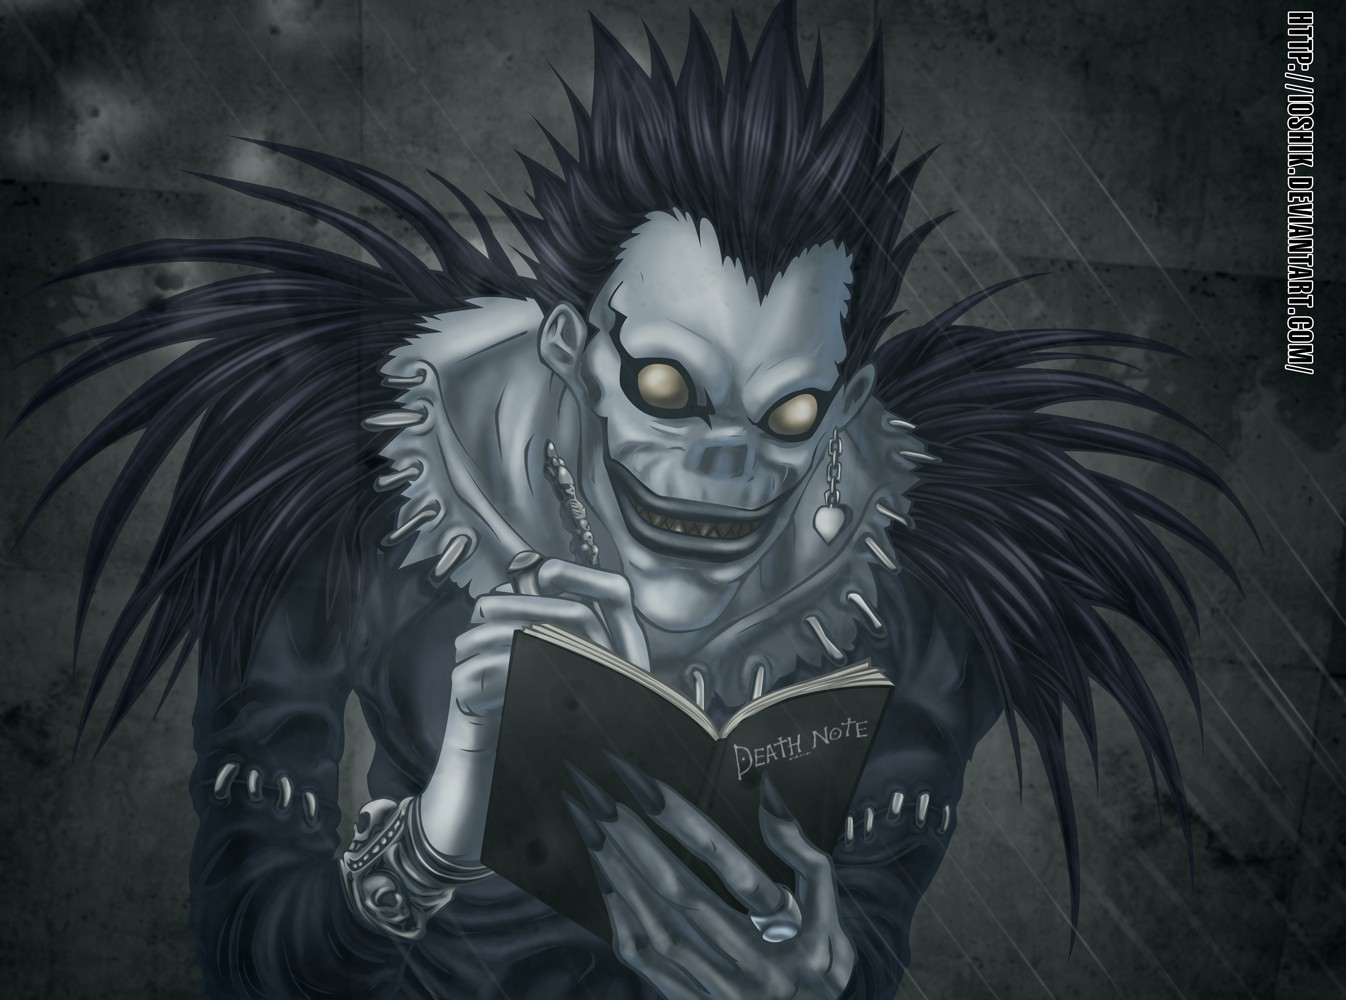 1000 images about death note on pinterest death note - Manga death note ...